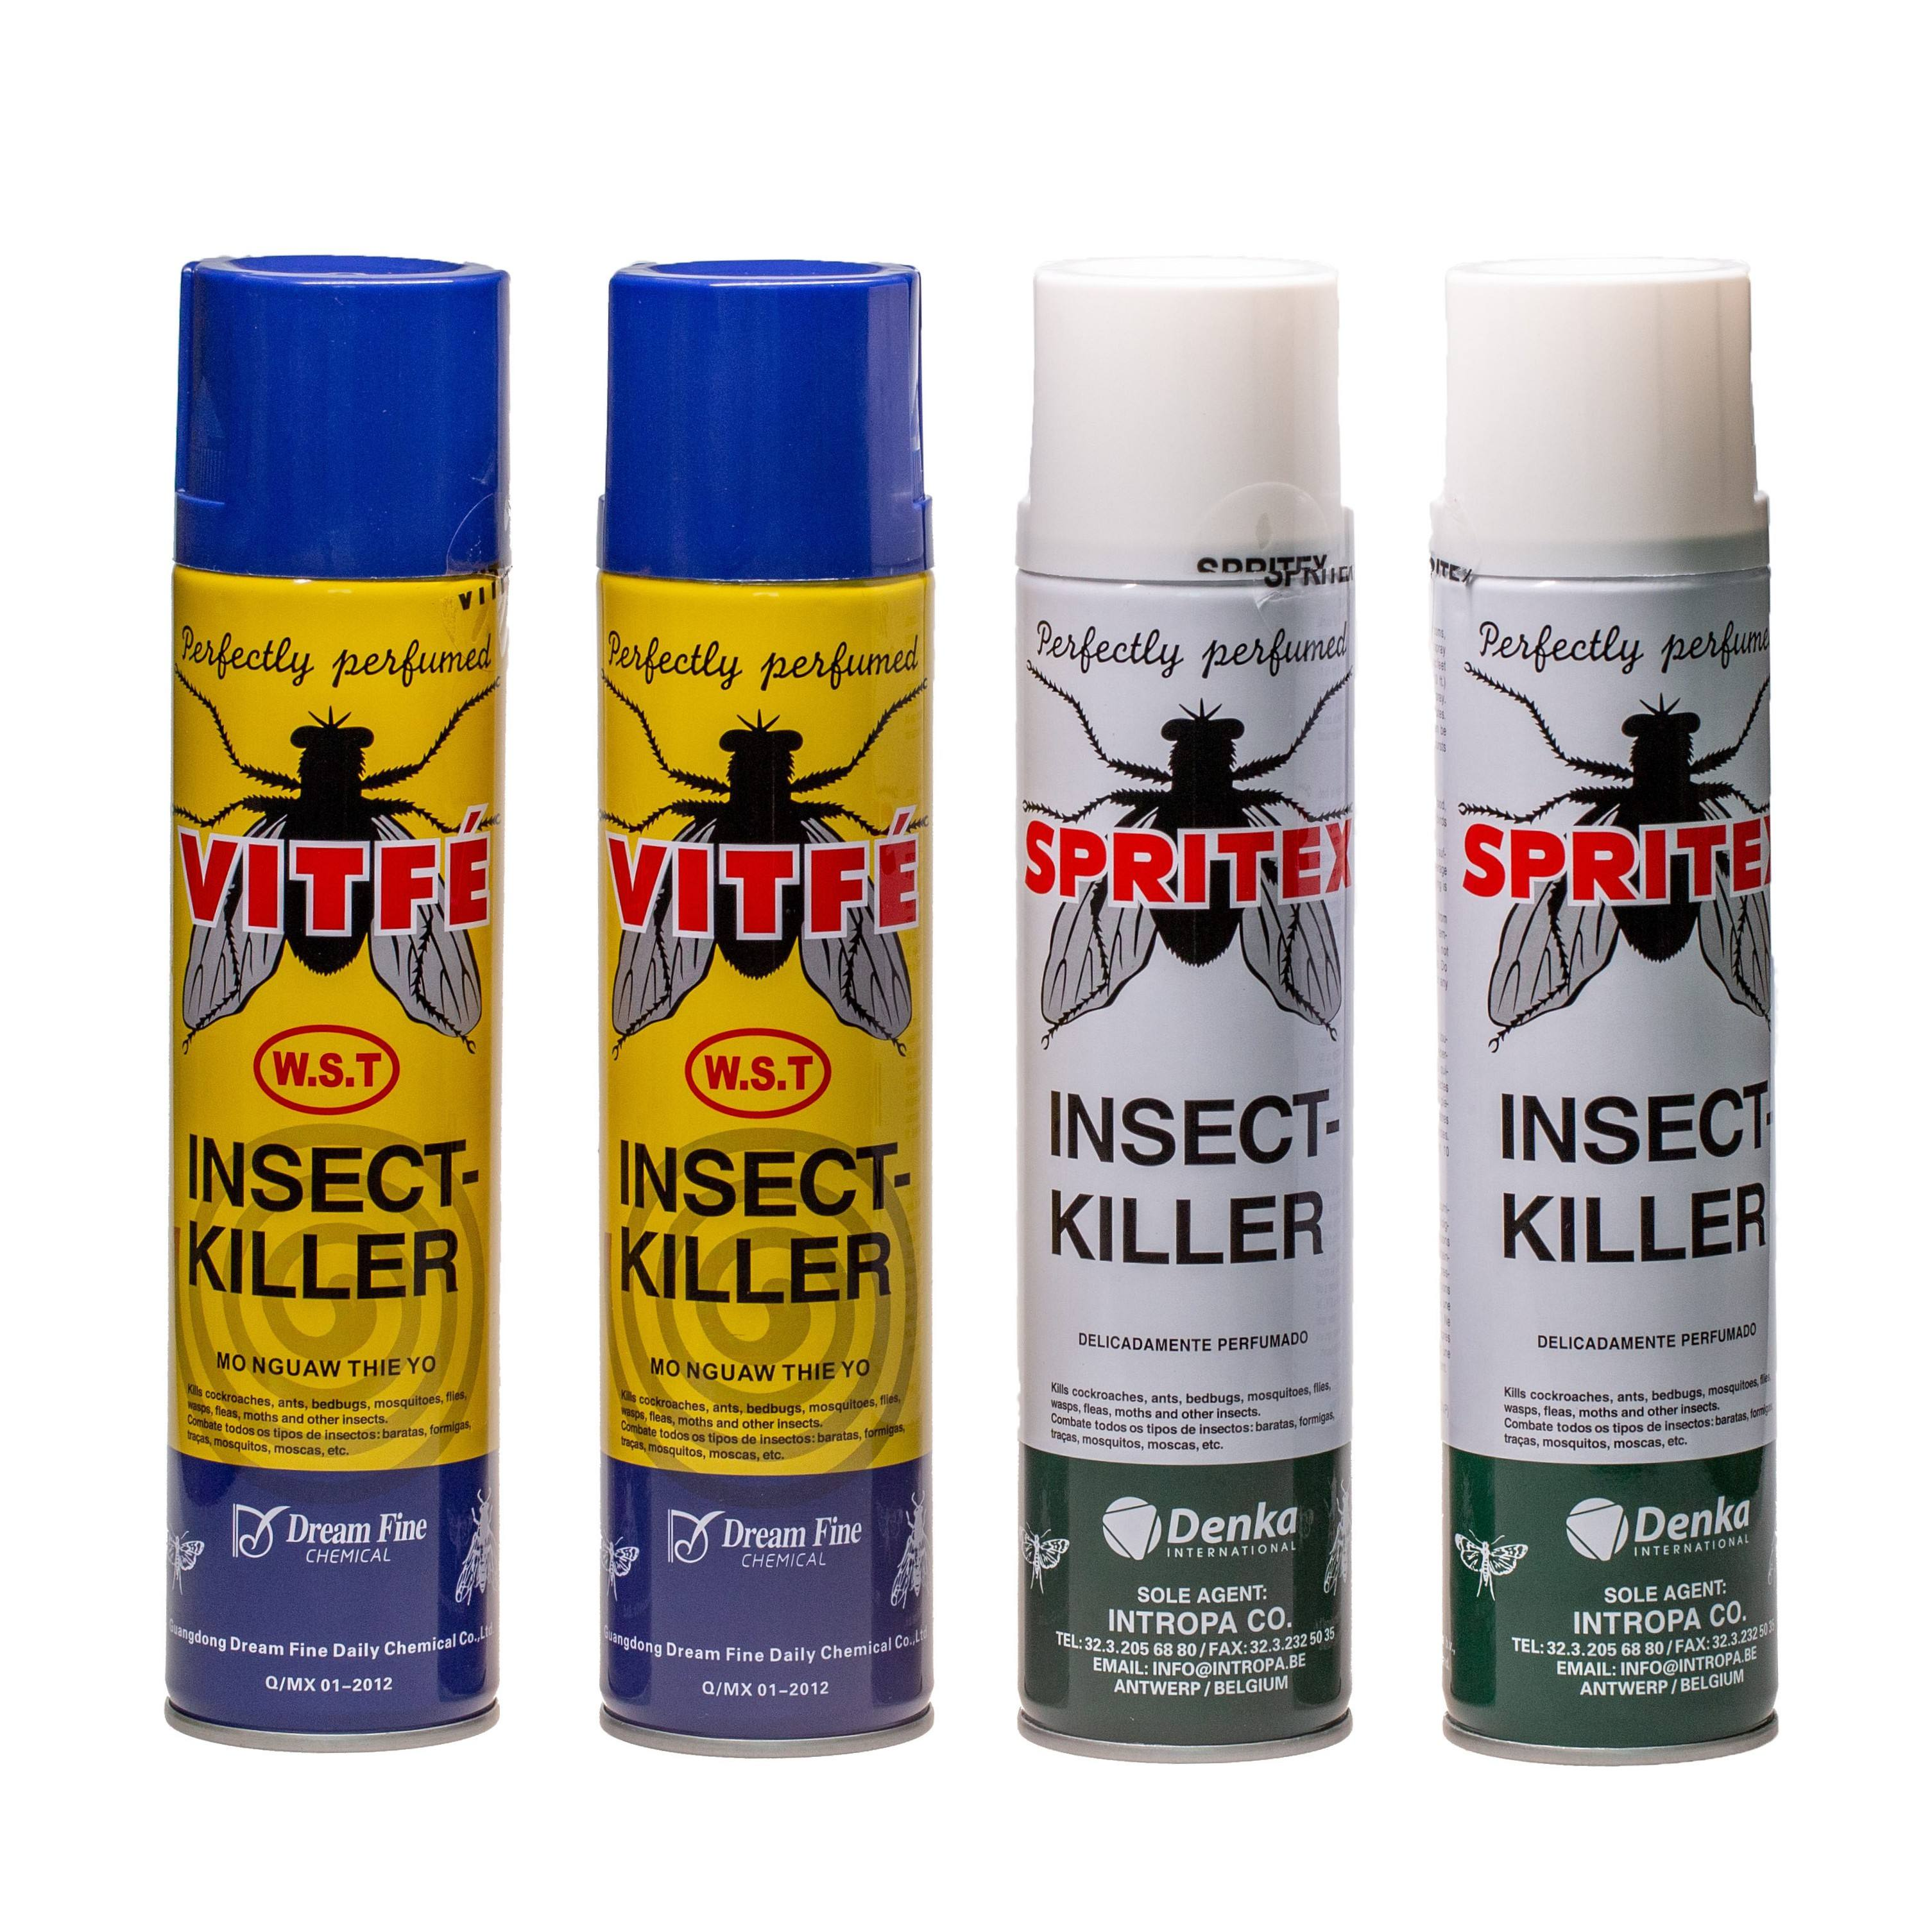 Pesticide Mosquito Killer Mosquito Top Quality Mosquito Fly Killer Spray Insecticide Cockroach Killer Spray